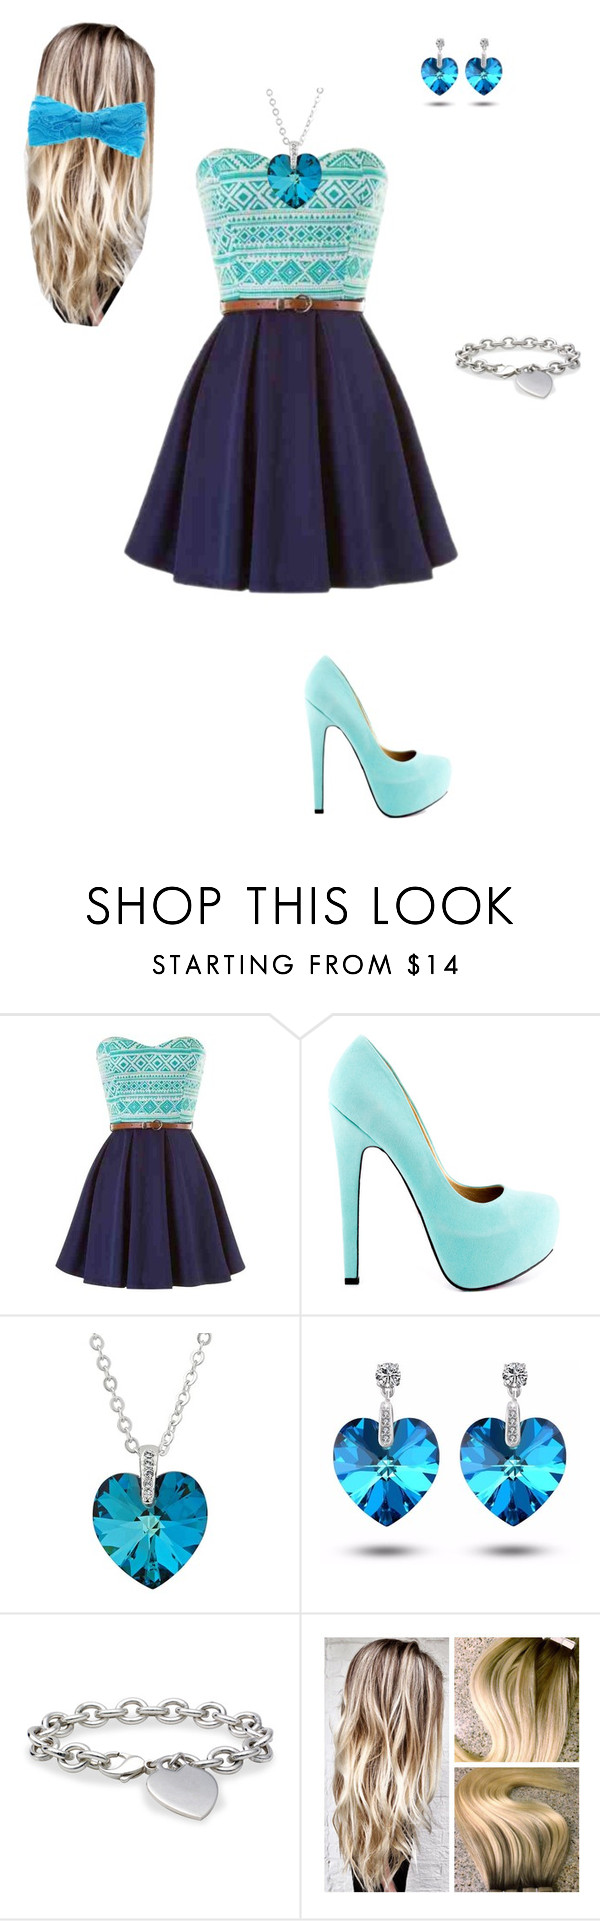 """""""Untitled #55"""" by cittie ❤ liked on Polyvore featuring TaylorSays, Jon Richard and Blue Nile"""